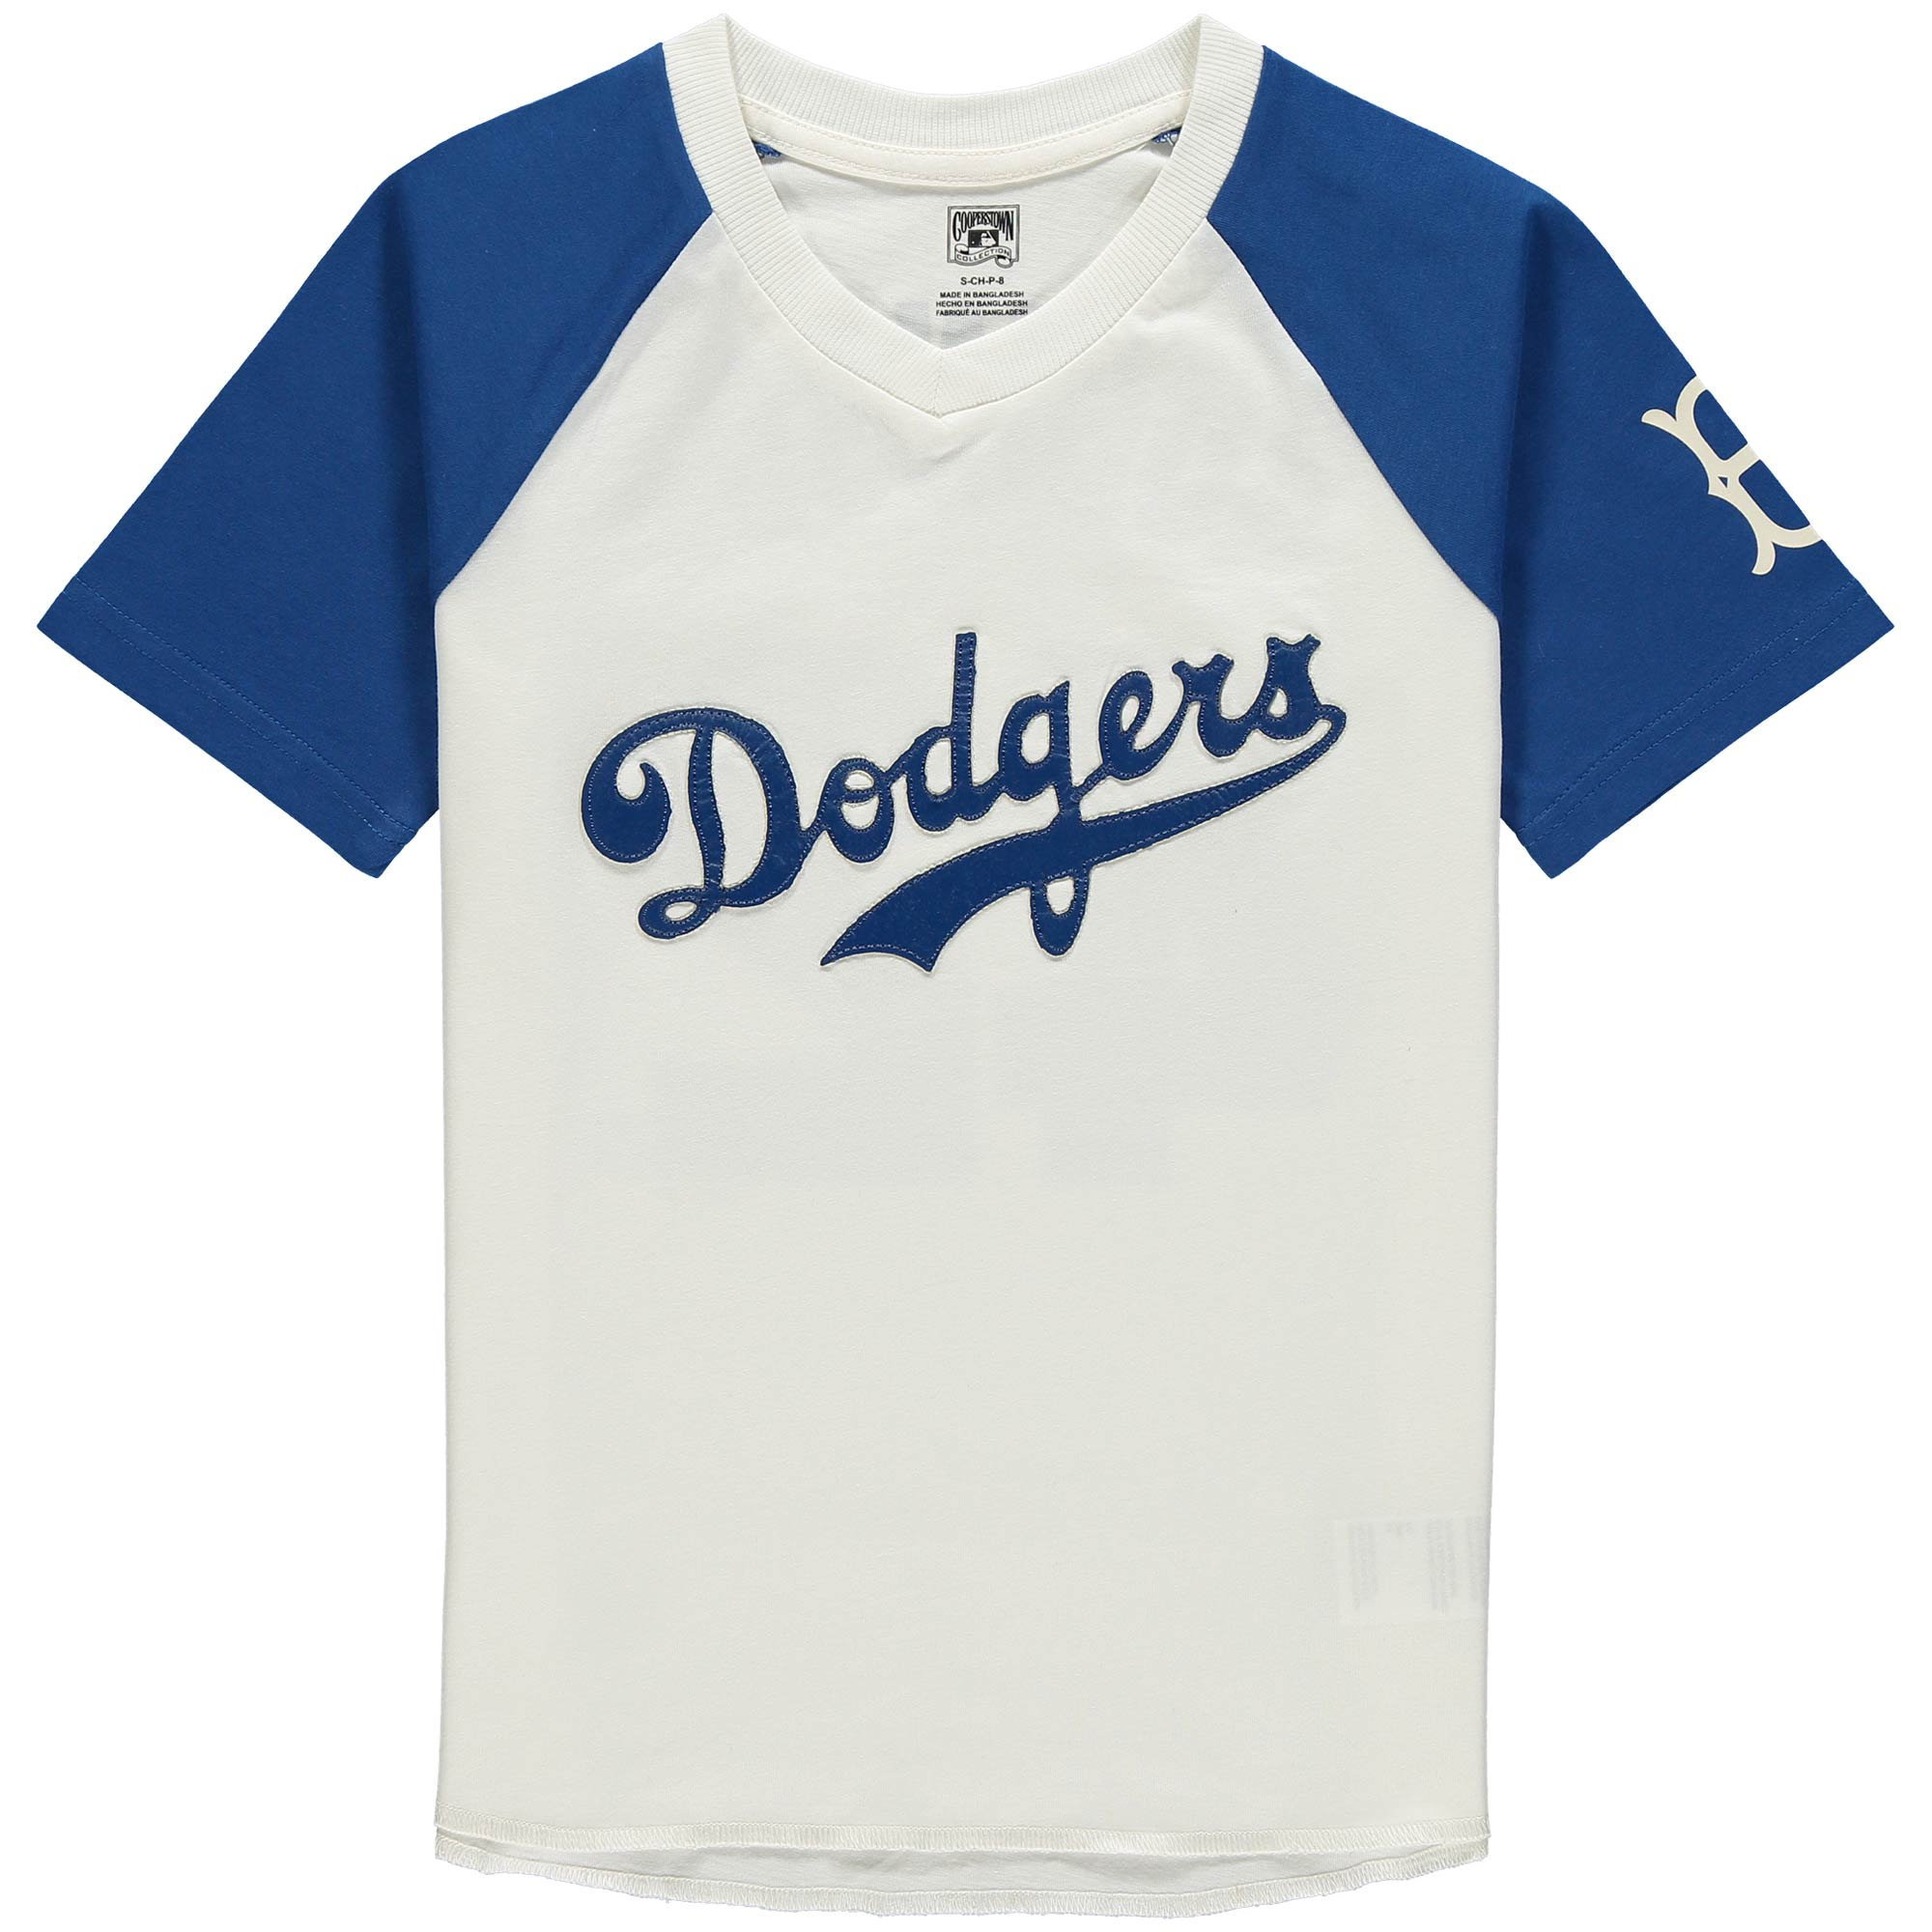 info for ef3bb e9e83 Brooklyn Dodgers Retro T Shirt - DREAMWORKS